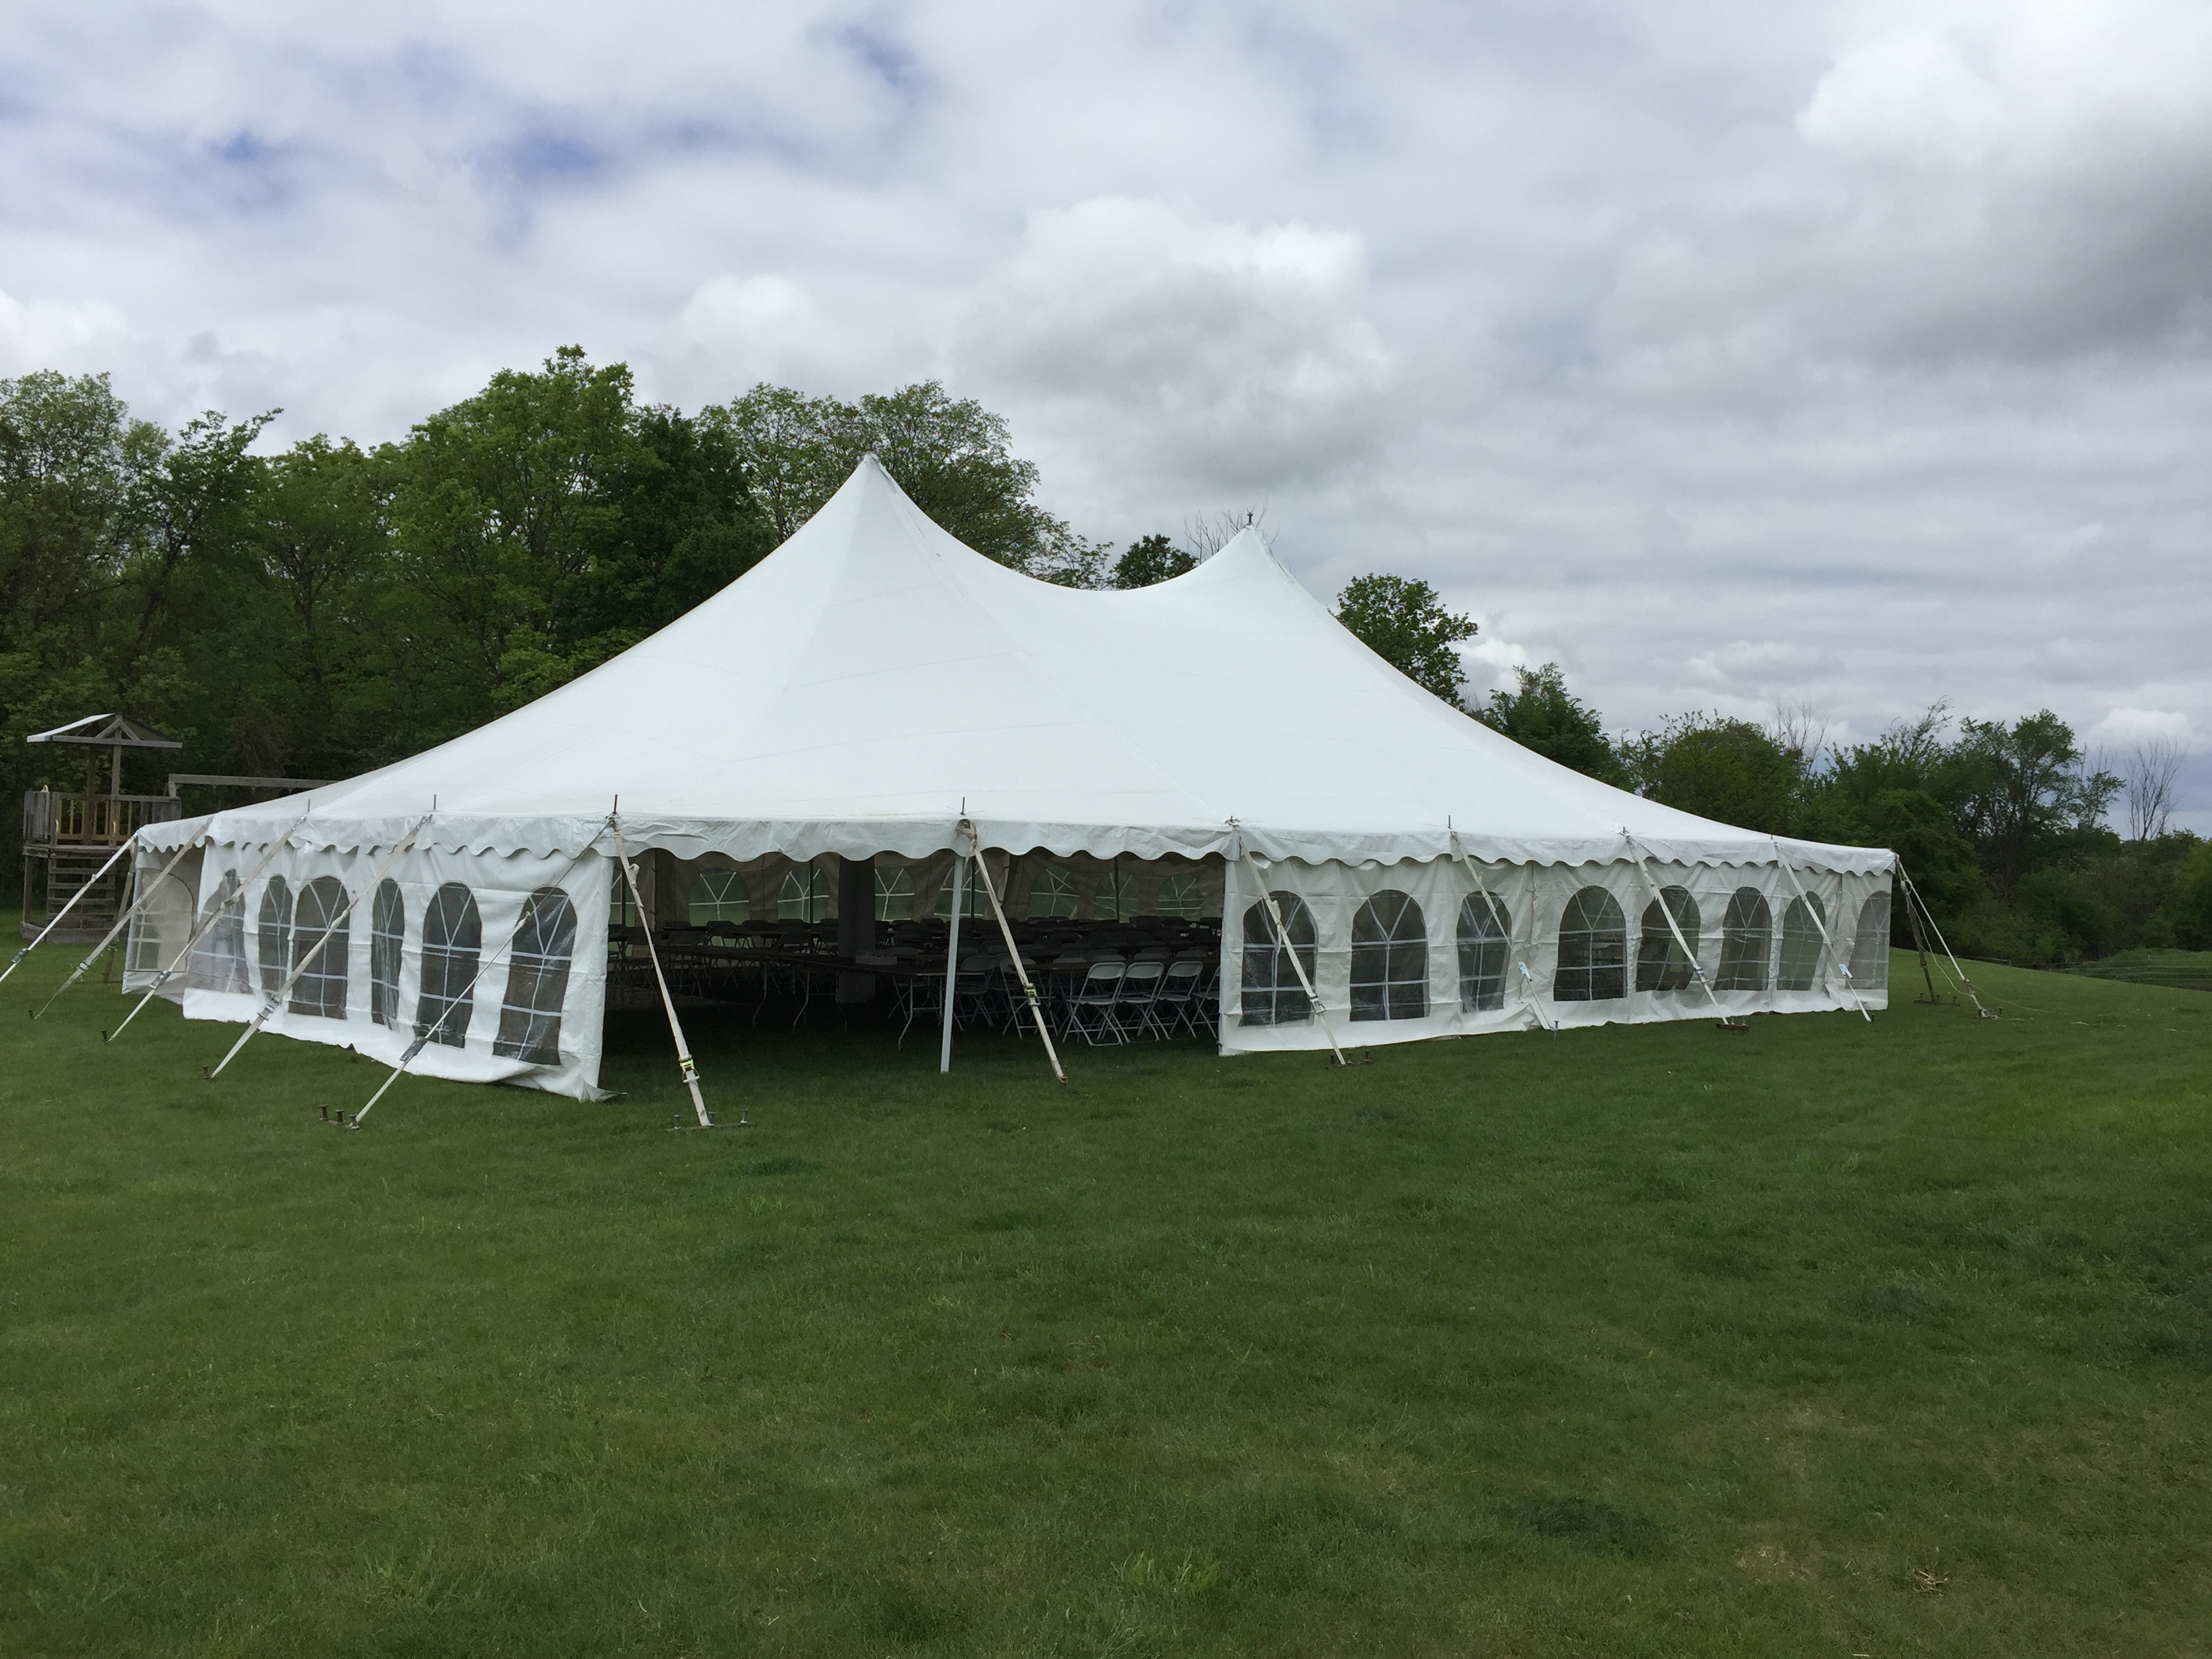 40×60-pole-tent-wedding-3 & 40x60-pole-tent-wedding-3 - THIS IS MEDIA - G u0026 K Event Rentals